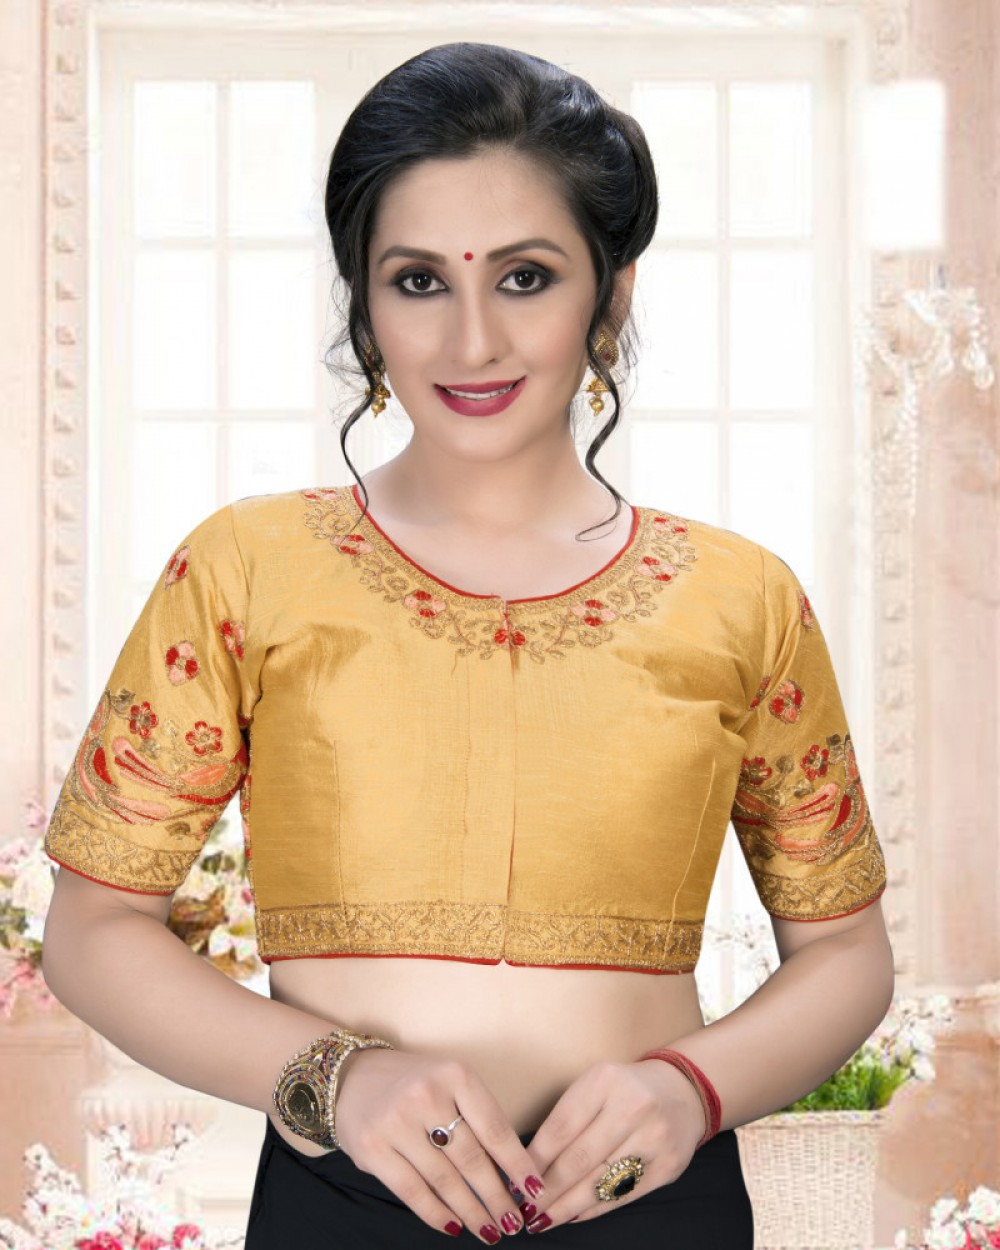 Marvellous Beige Colour Phantom Silk Stylish Blouse for Women